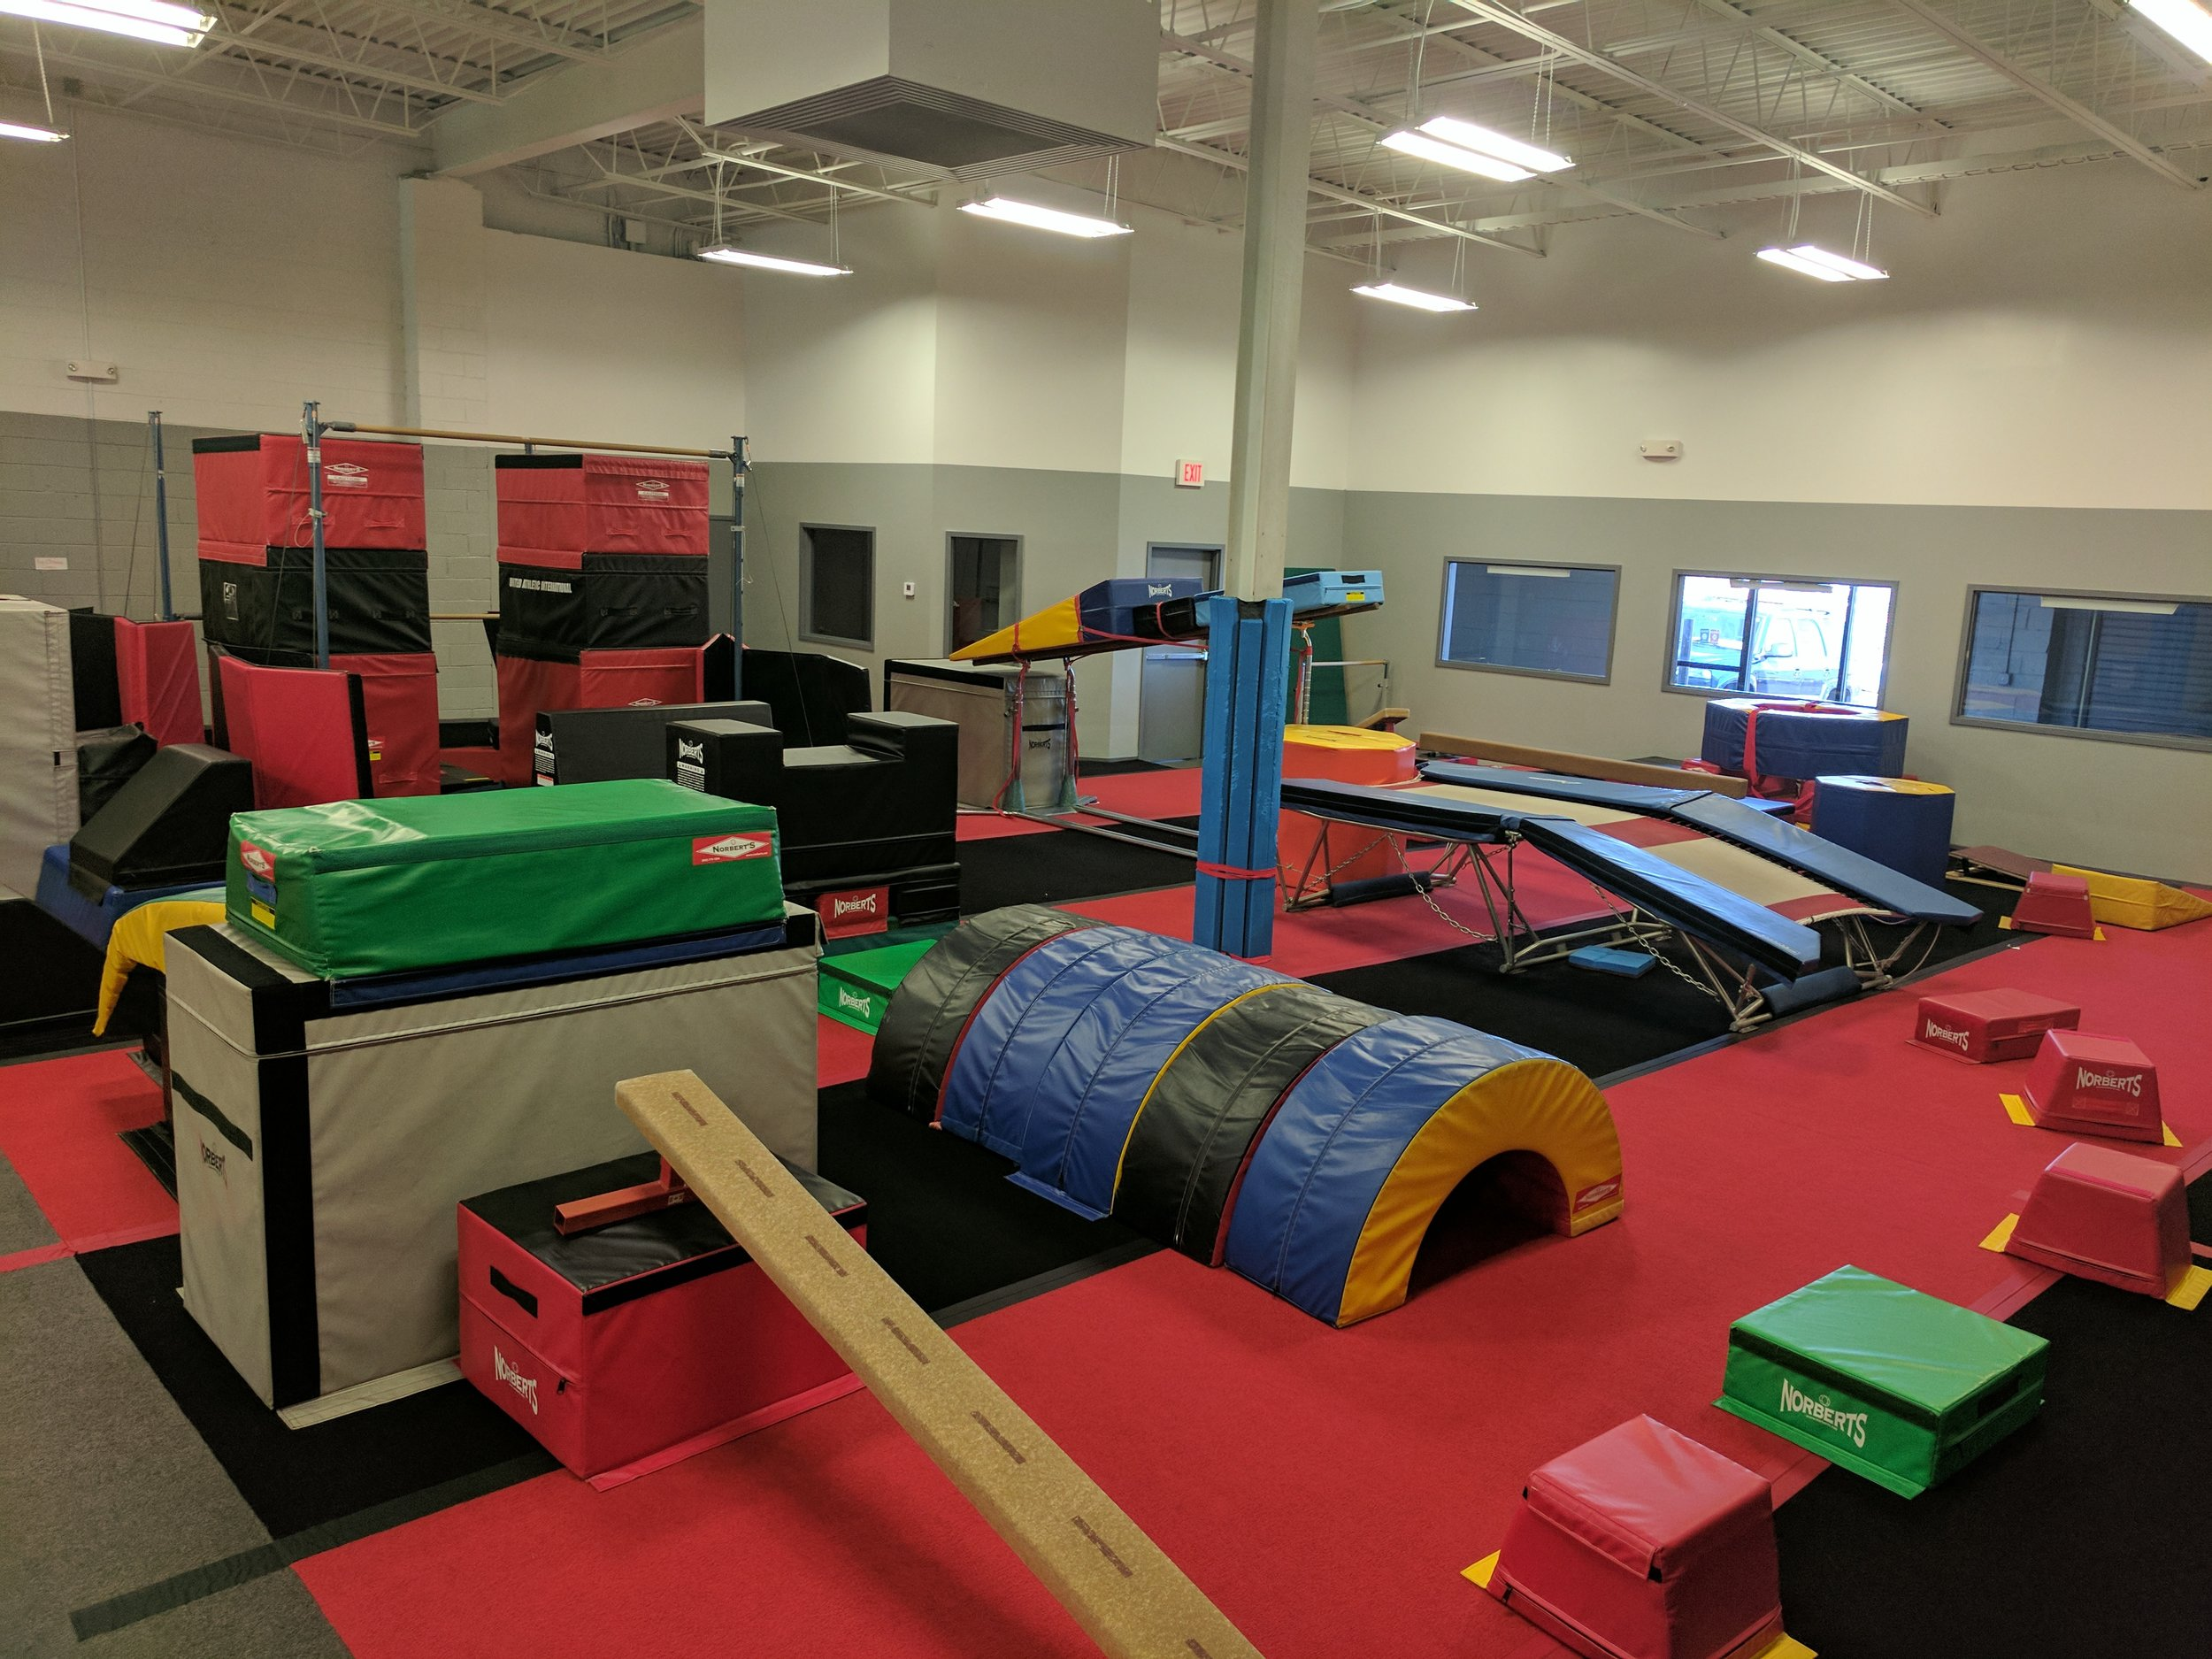 (Lower Gym partial overview) Obstacle courses including spider crawl and double-mini trampoline